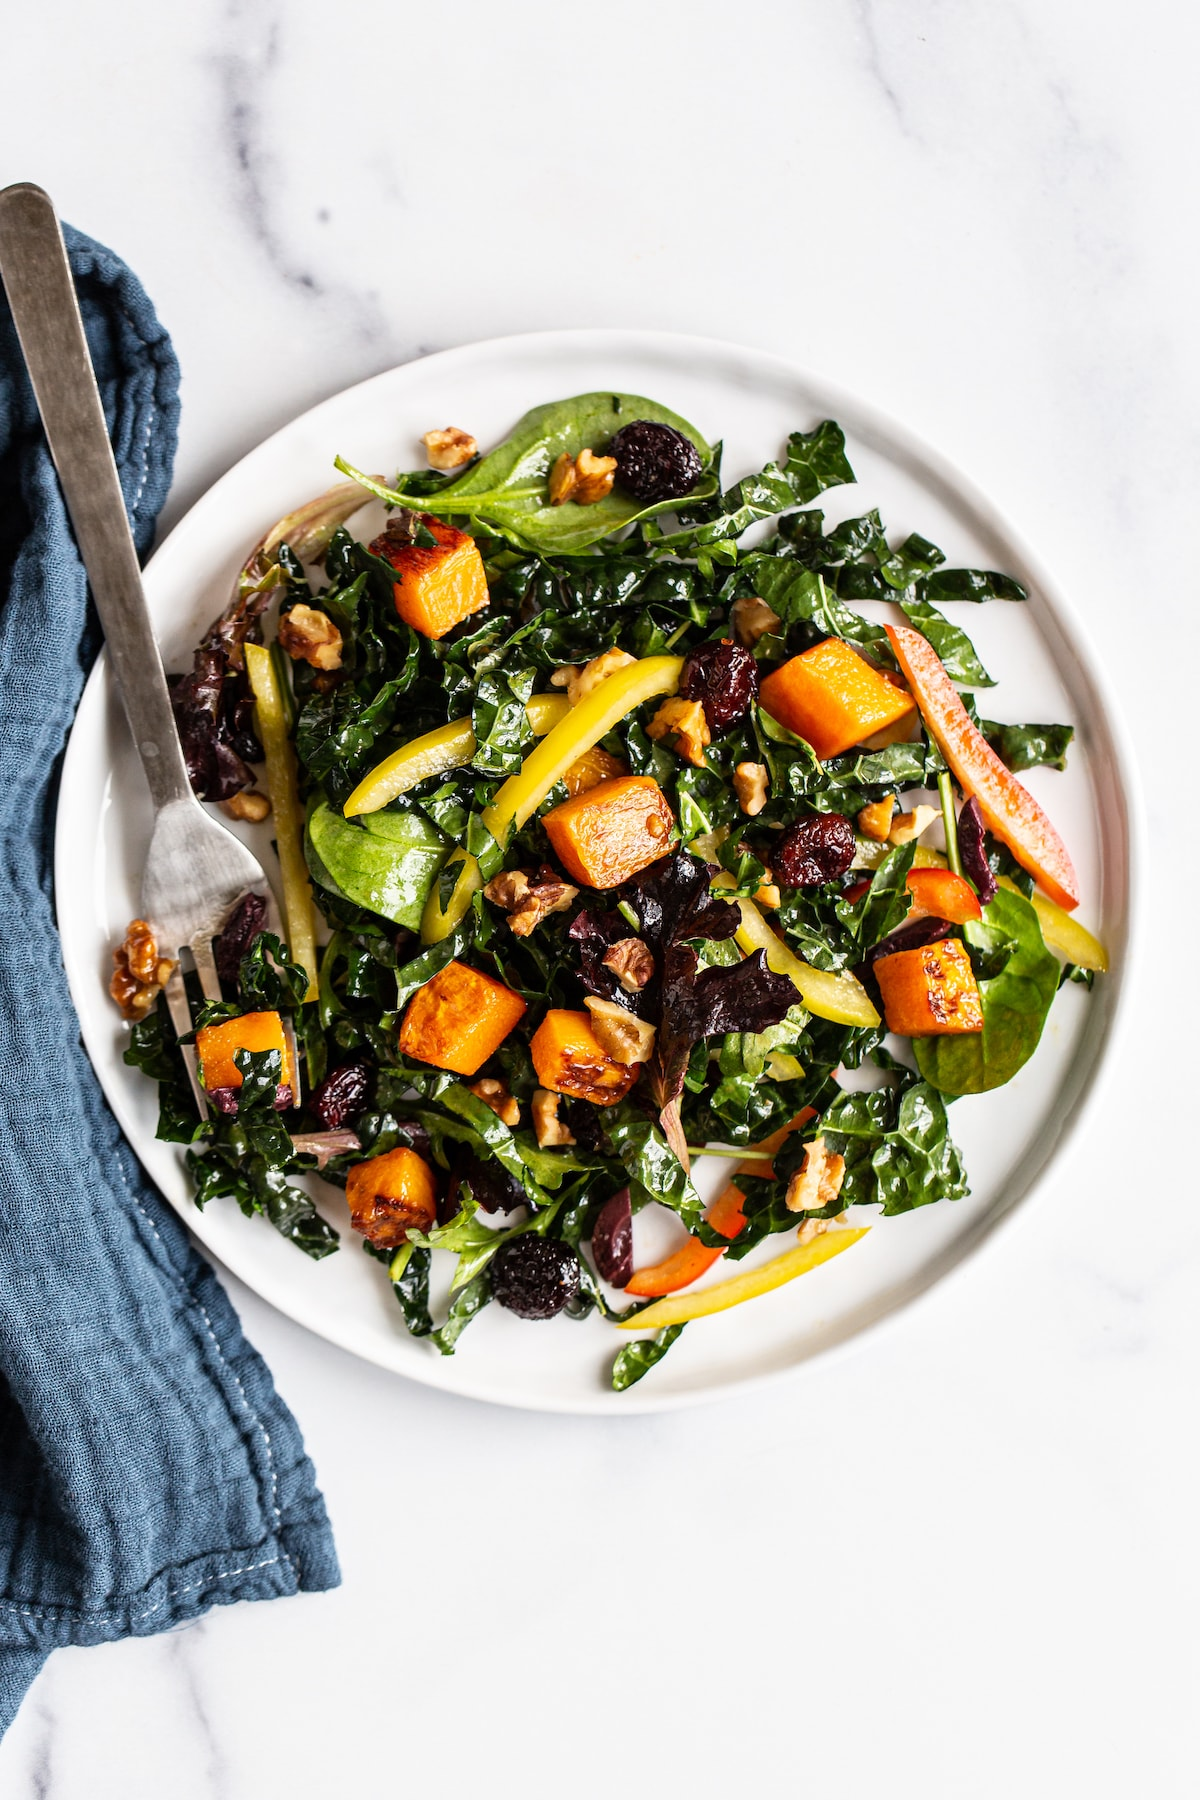 Plate with butternut squash and kale salad.